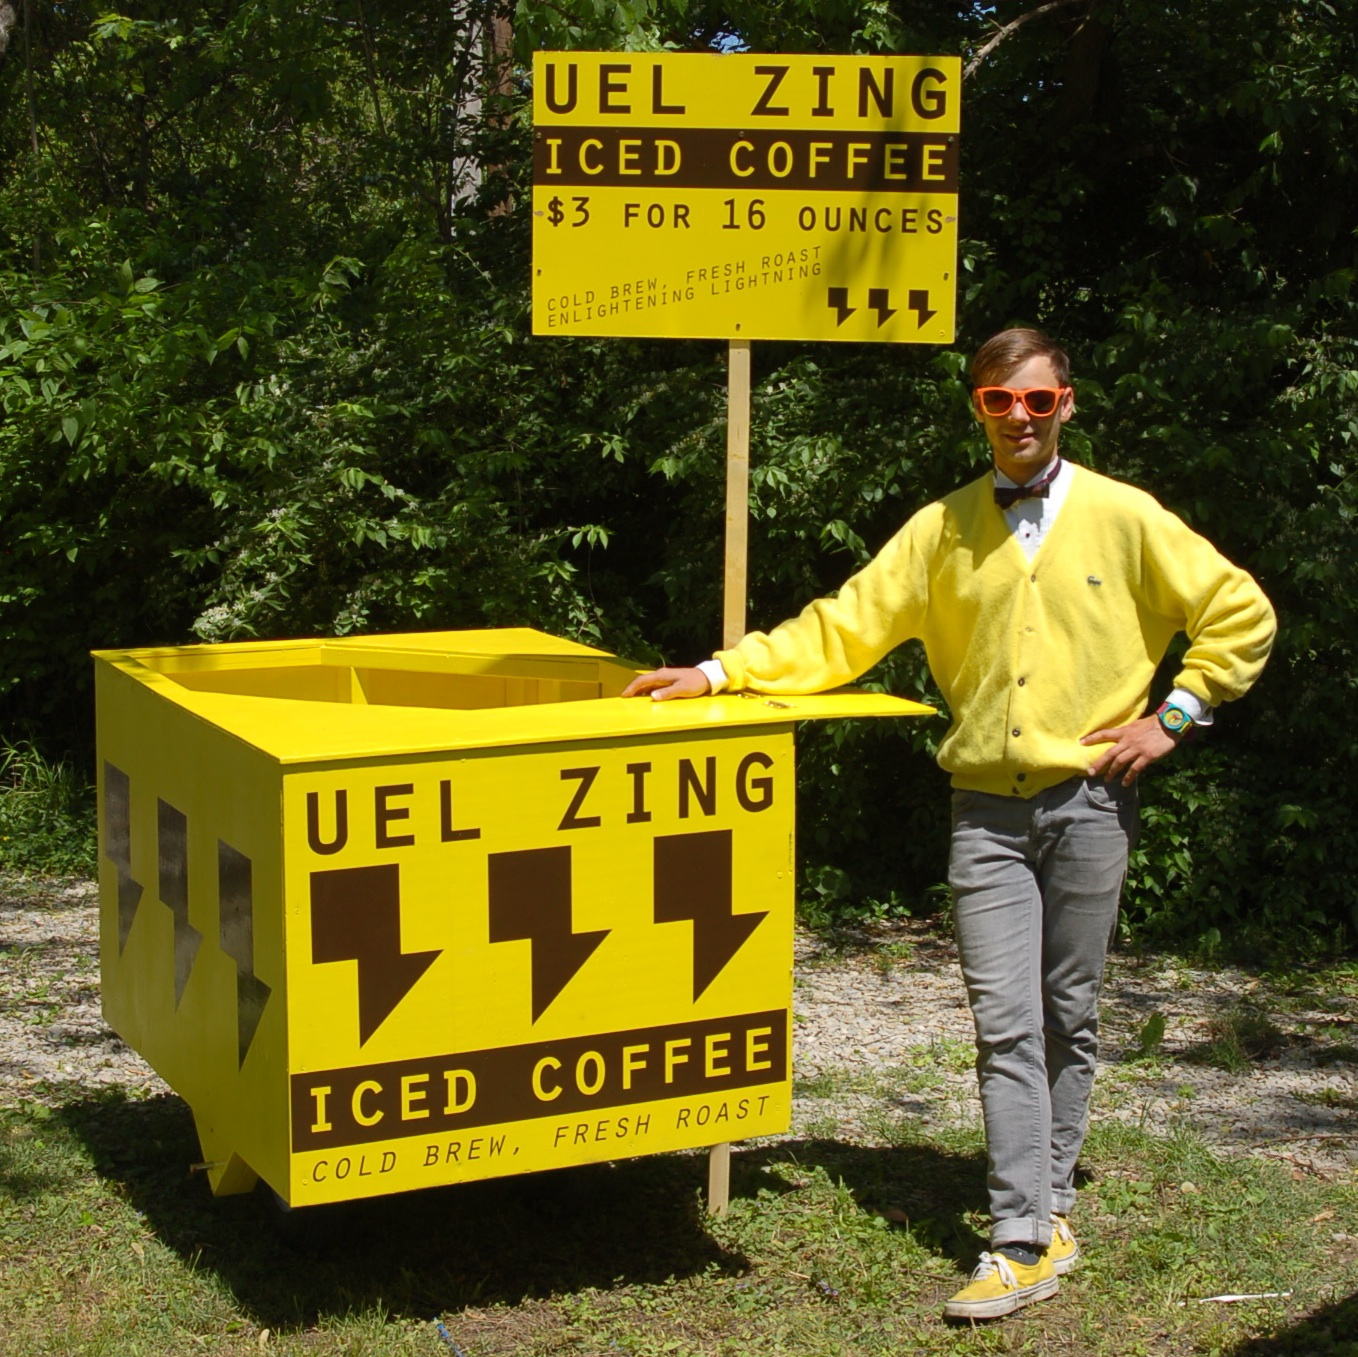 Uel Zing, Day One - Here I am on the very first day looking like a dork with a freshly built cart.